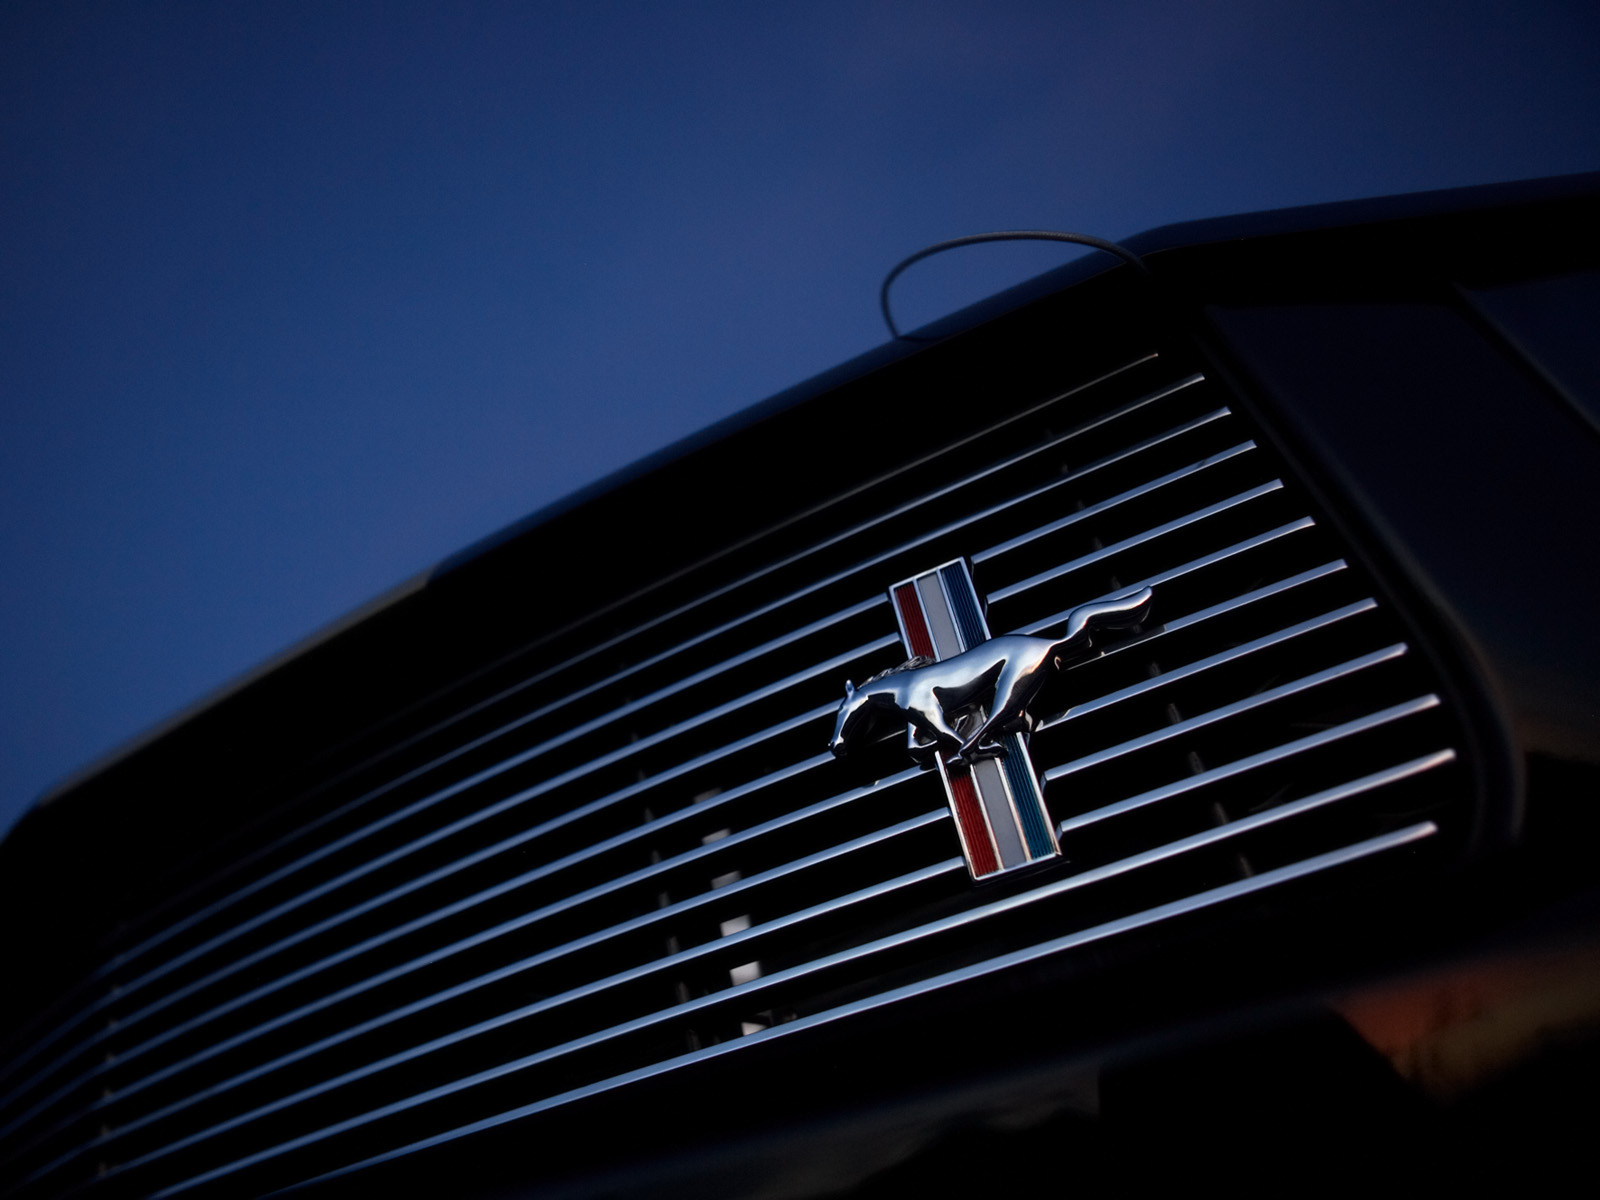 2006 Ford Shelby GT H Mustang   Grille   Emblem   1600x1200 Wallpaper 1600x1200